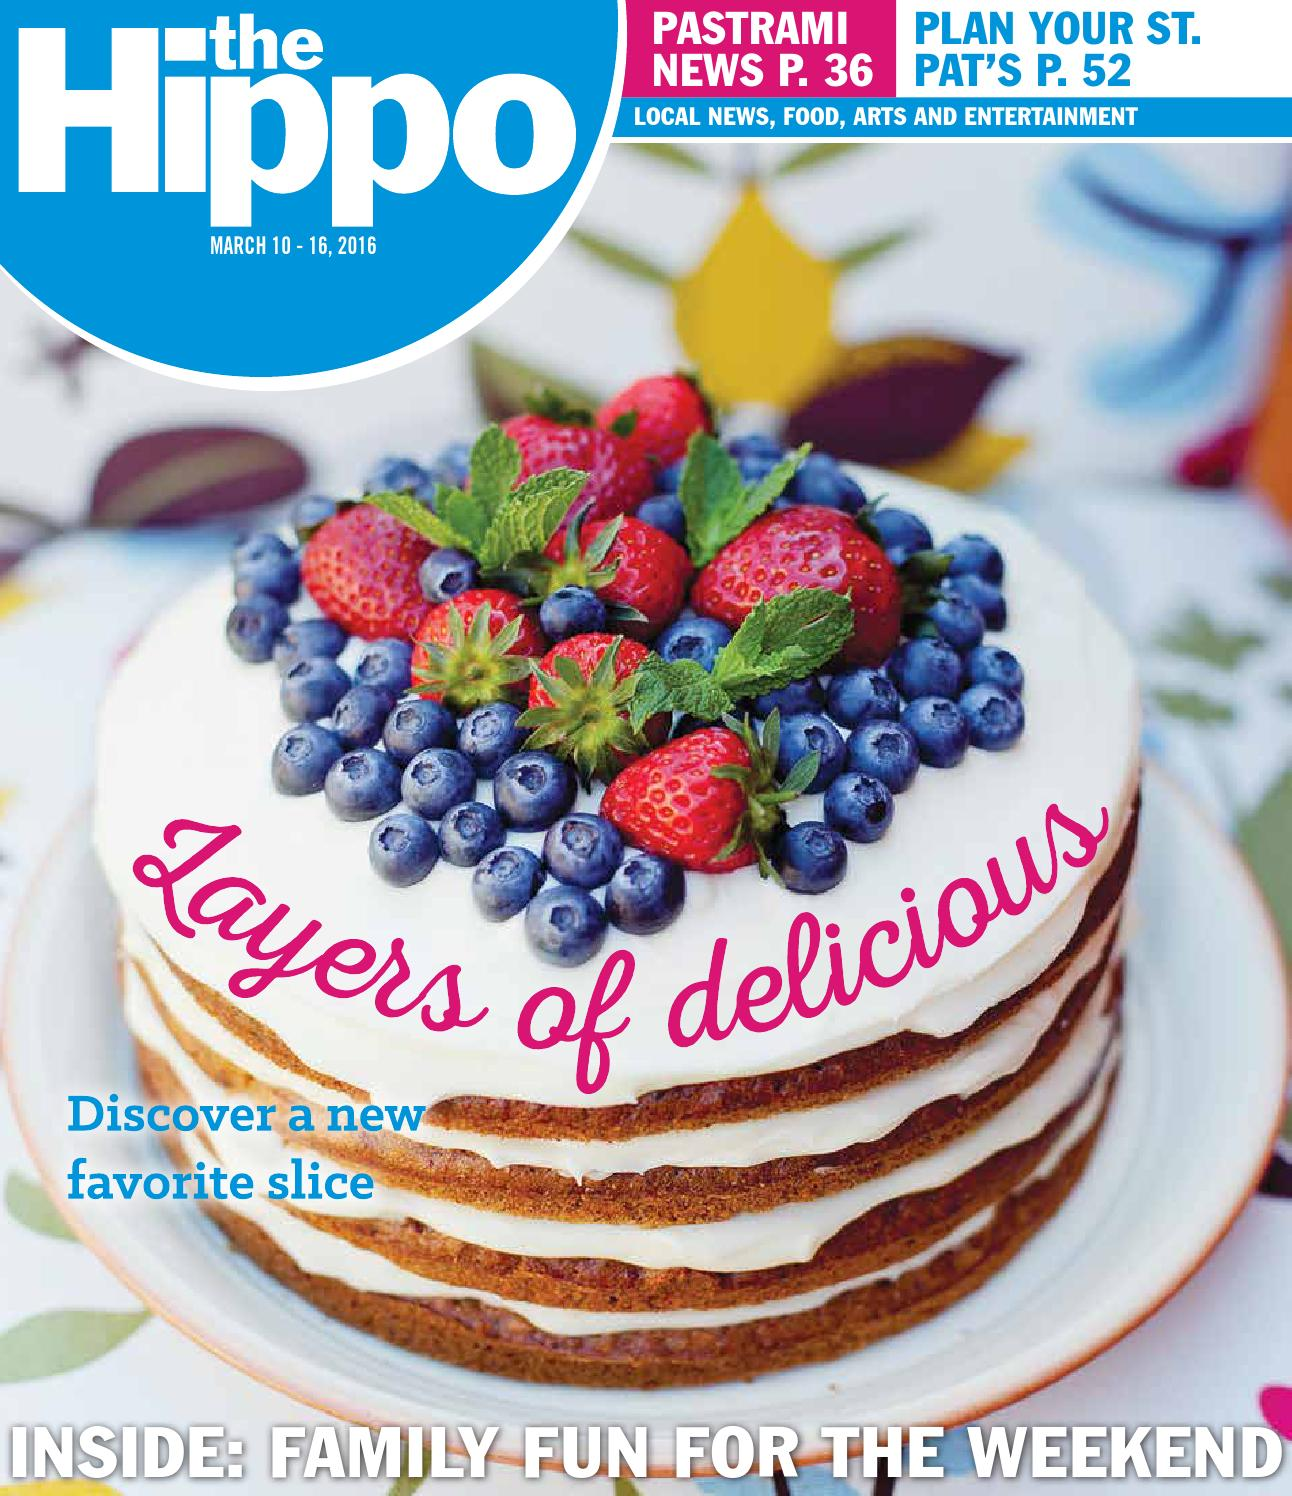 building buttercream skills class 1 wilton cake.htm hippo 3 10 16 by the hippo issuu  hippo 3 10 16 by the hippo issuu